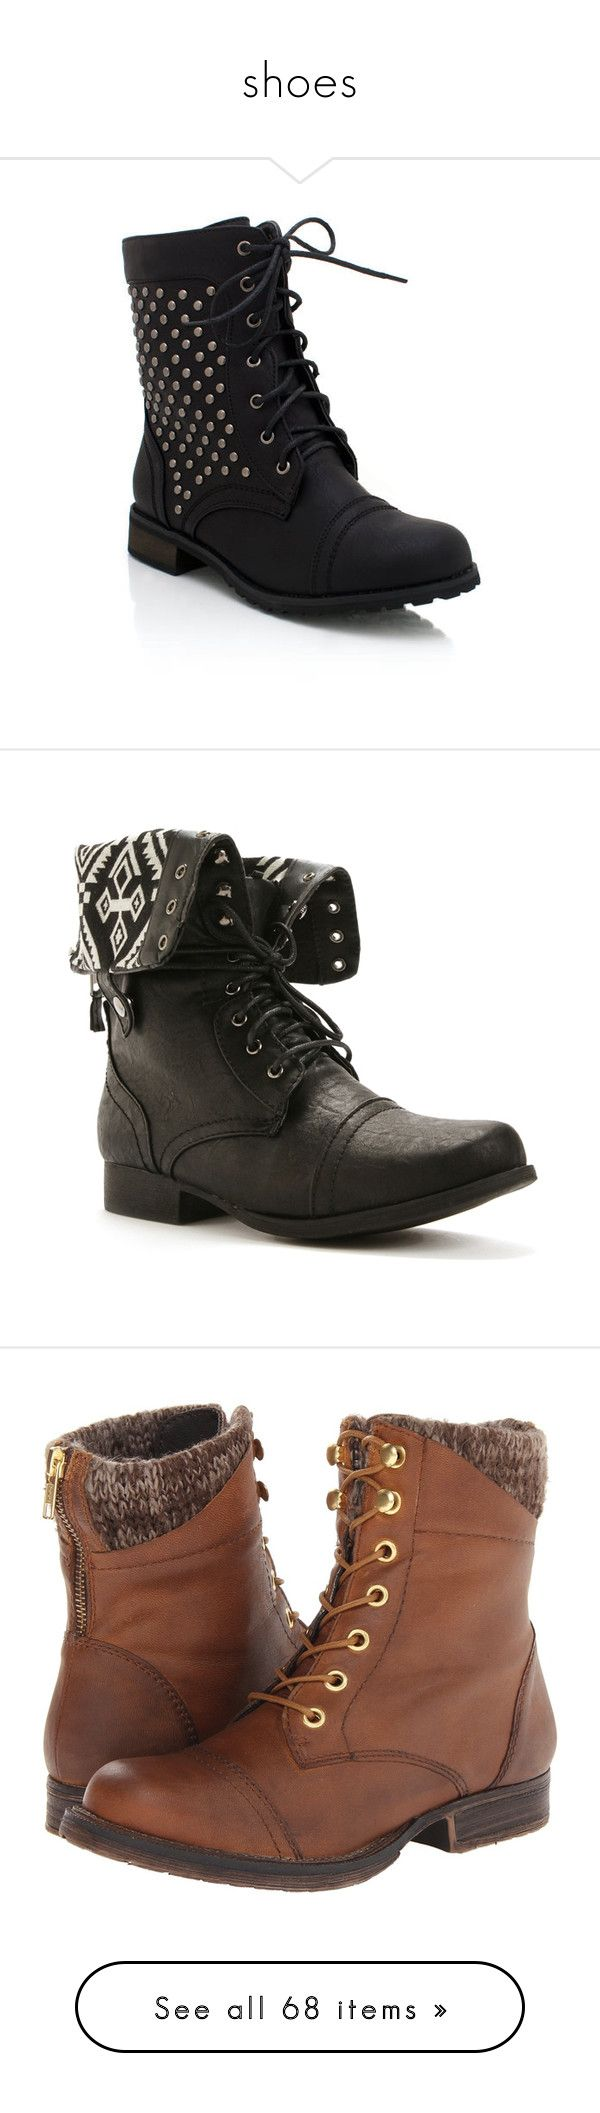 """""""shoes"""" by greys-lovatic ❤ liked on Polyvore featuring shoes, boots, ankle booties, chaussures, sapatos, ankle boots, high heel combat boots, lace up high heel booties, army boots and combat boots"""